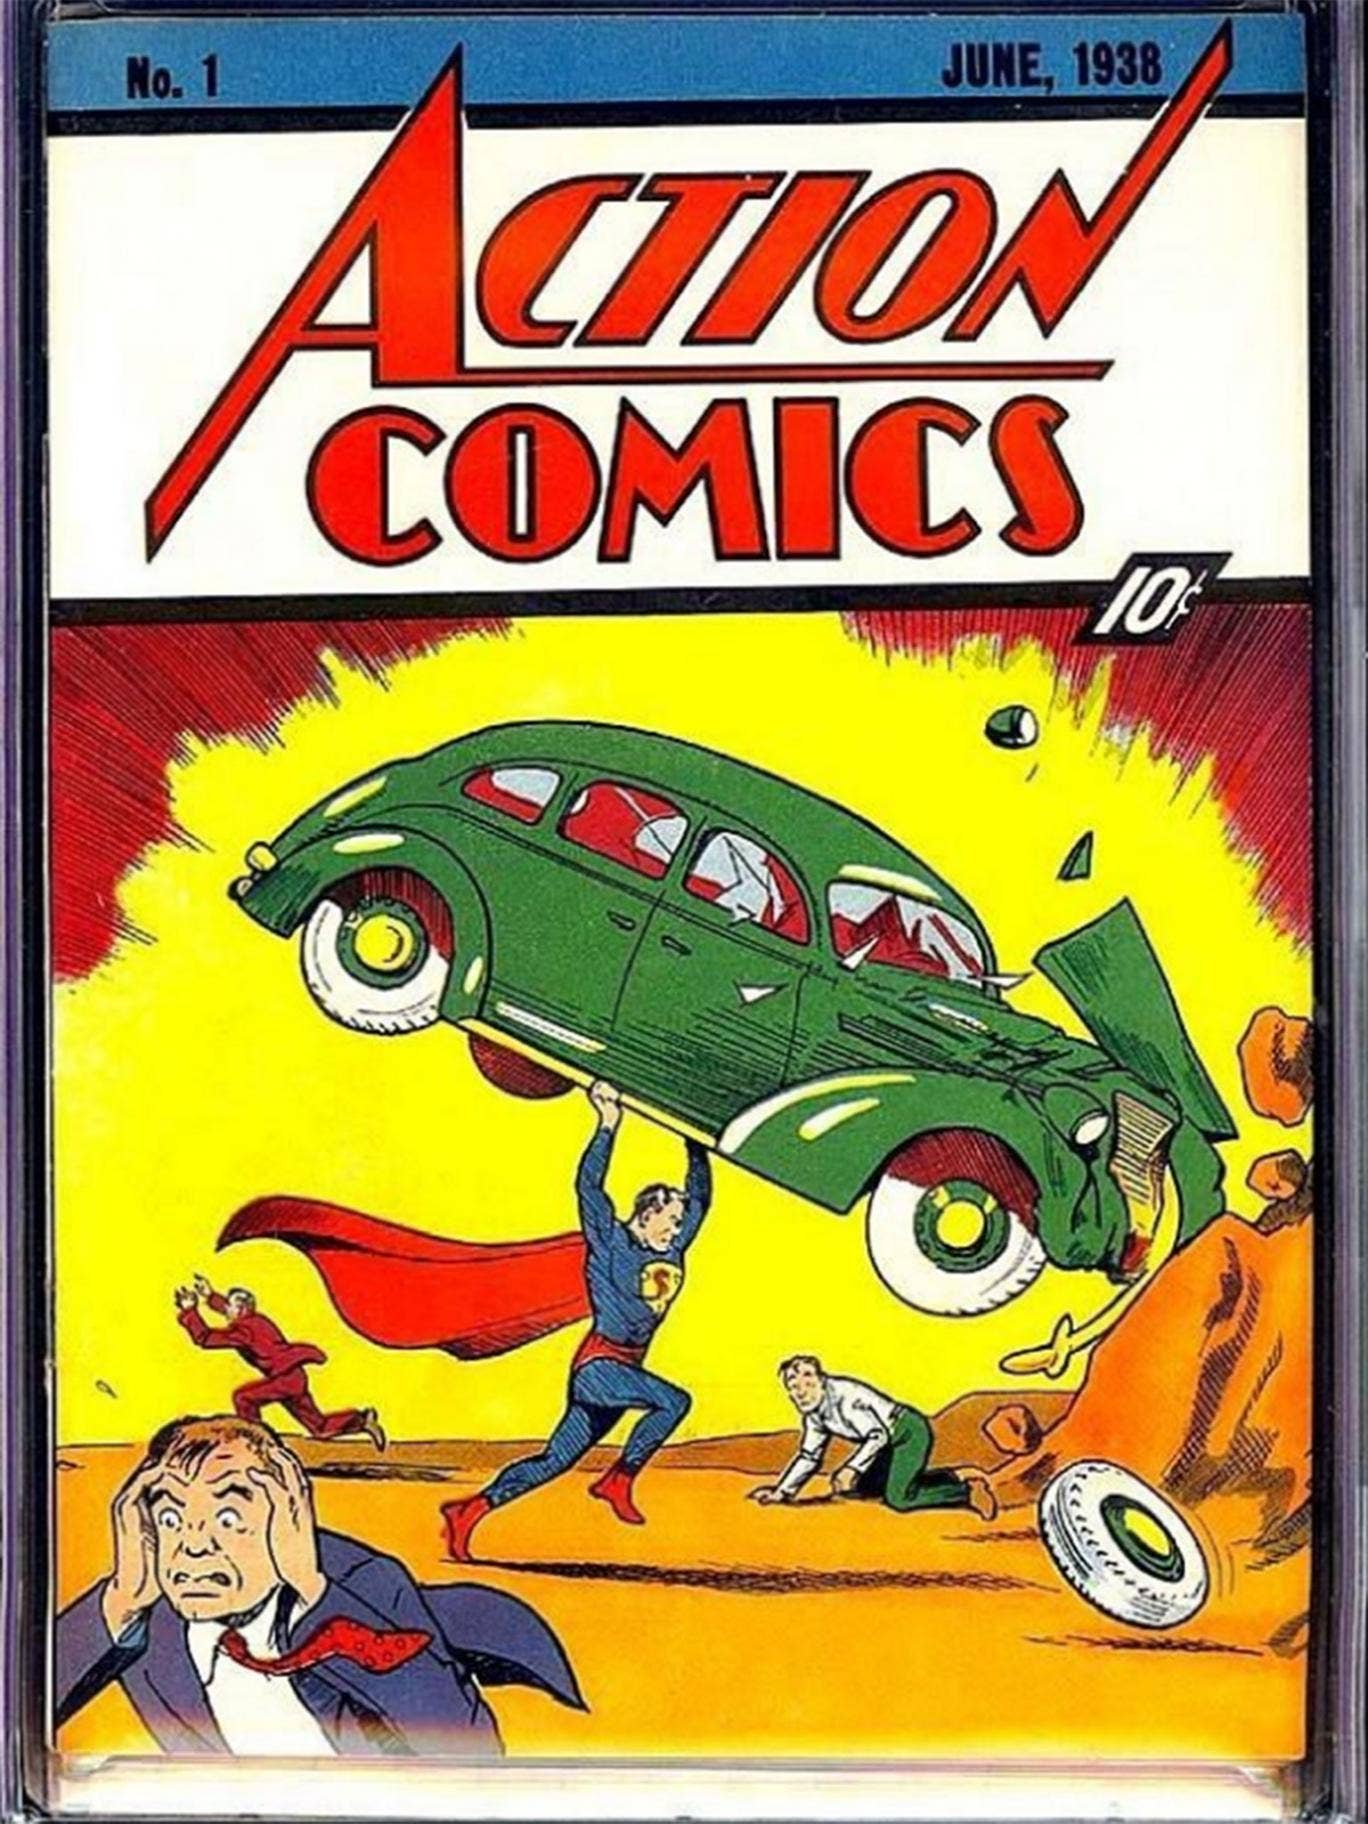 The cover of the comic which introduced the world to Superman